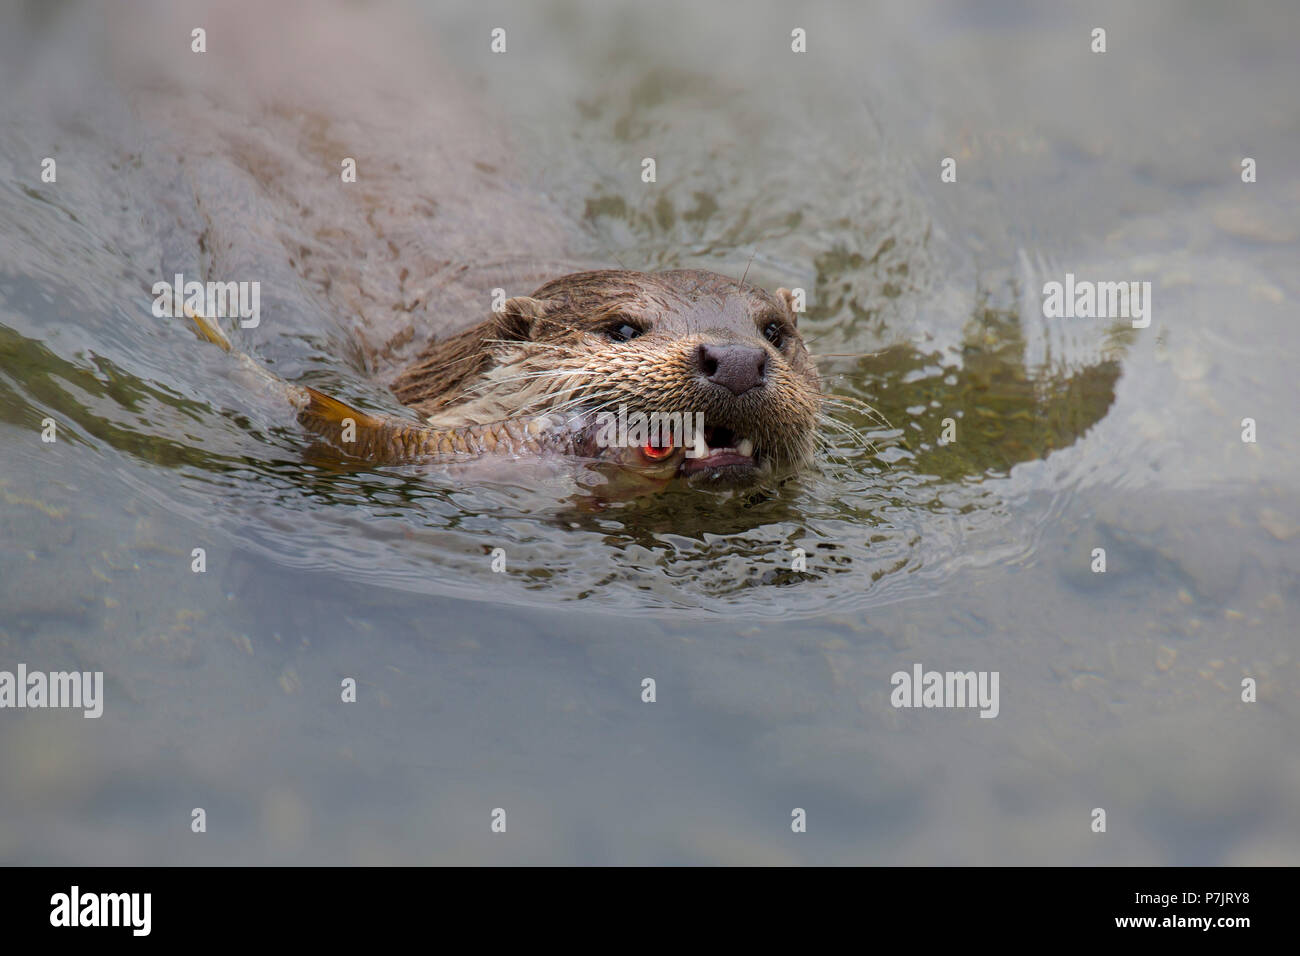 Eurasian otter, Lutra lutra swimming with captured fish in the water - Stock Image